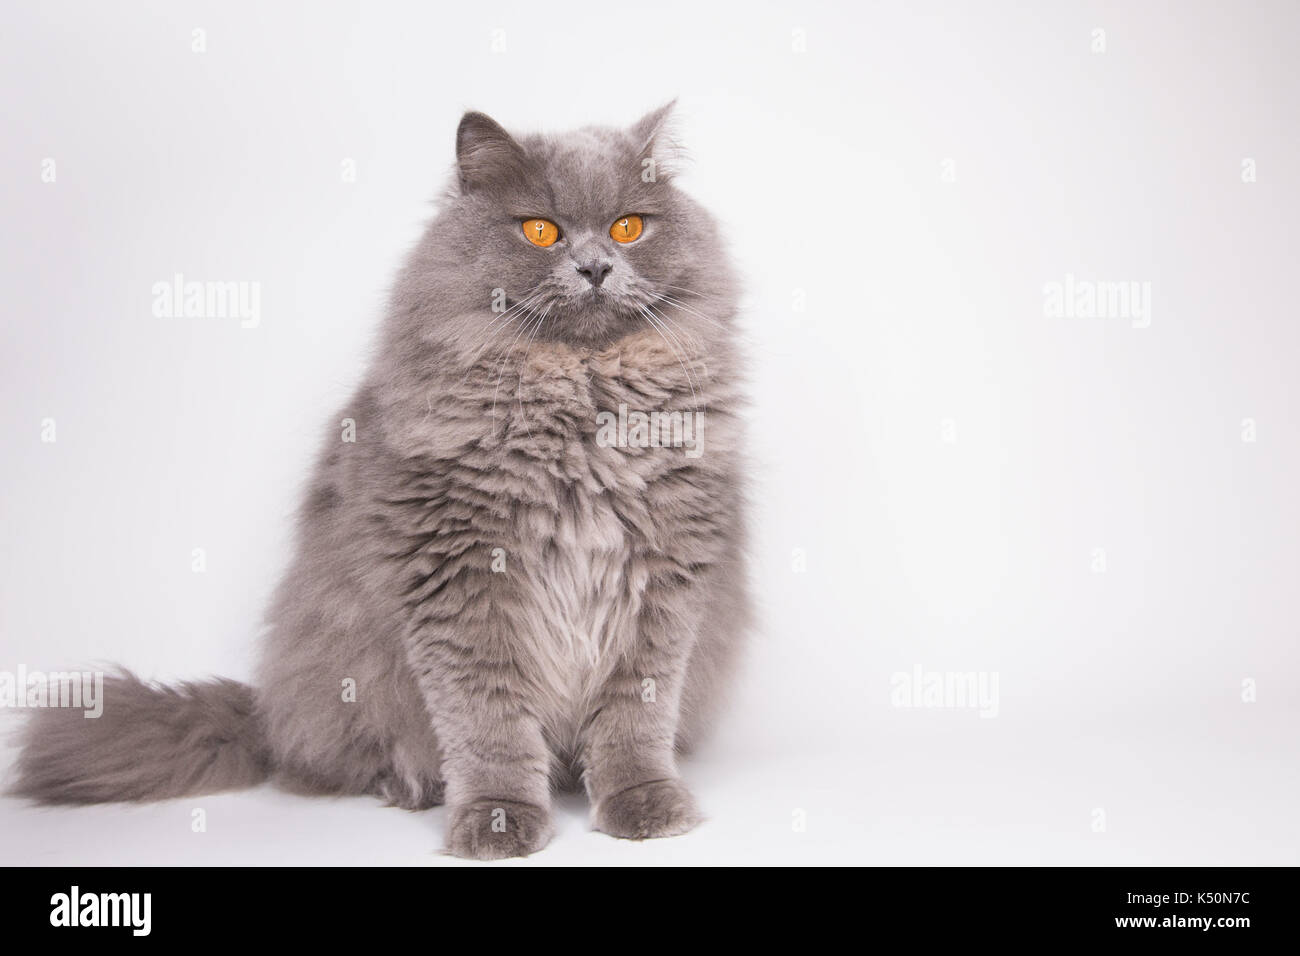 grey fluffy cat - Stock Image